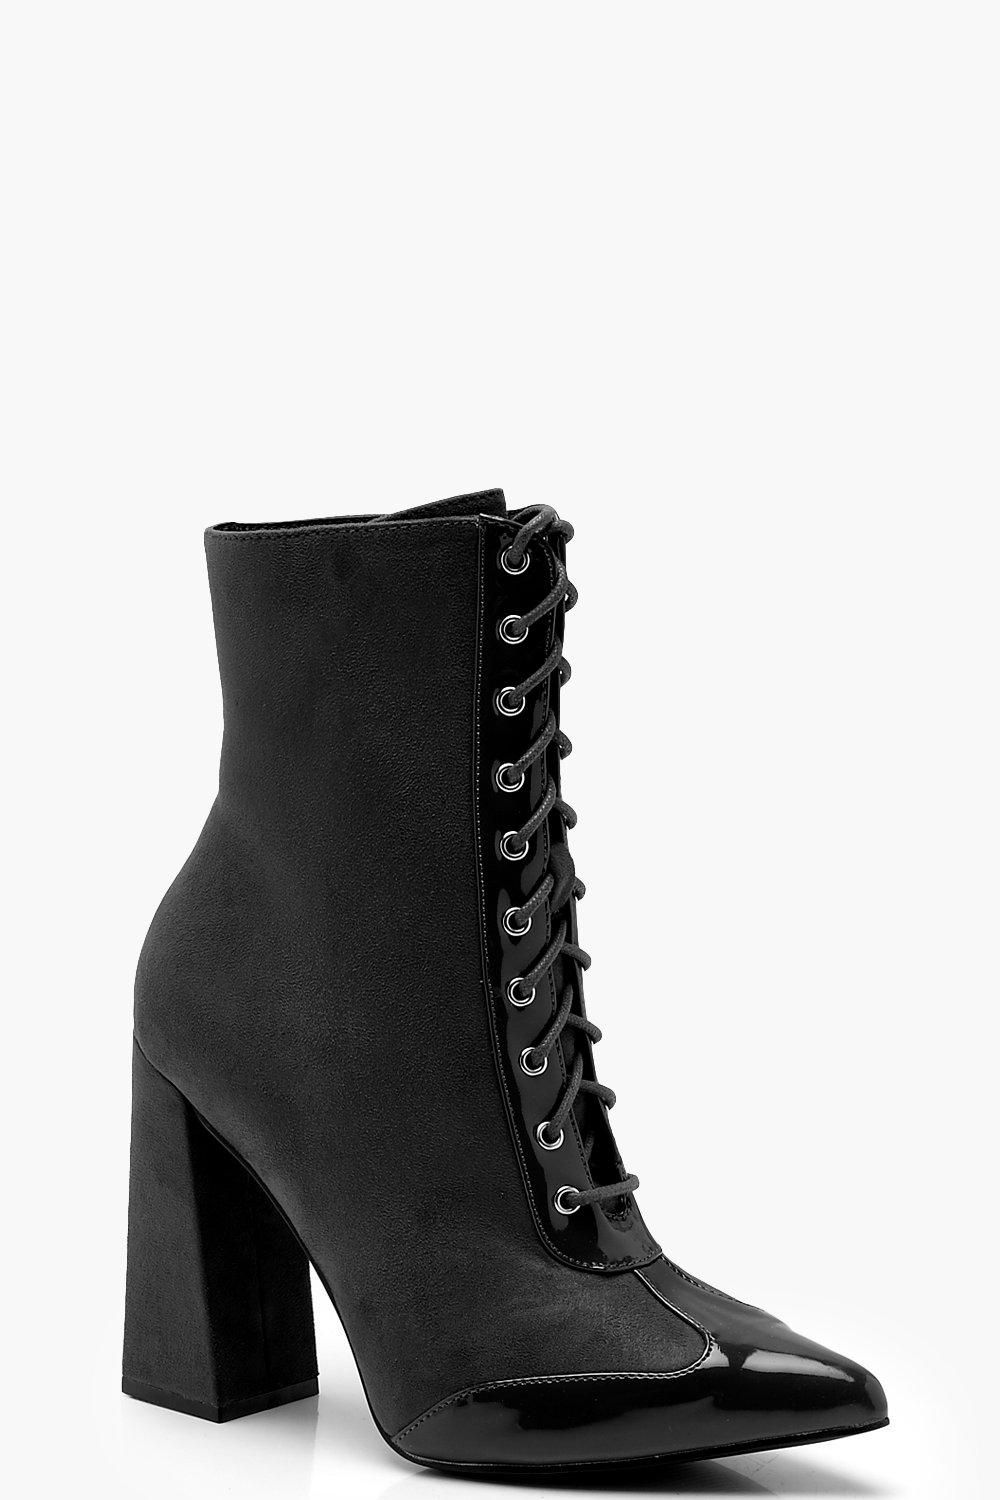 1c5b0b0964 Click here to find out about the Block Heel Hiker Boots from Boohoo, part  of our latest Shoes collection ready to shop online today!